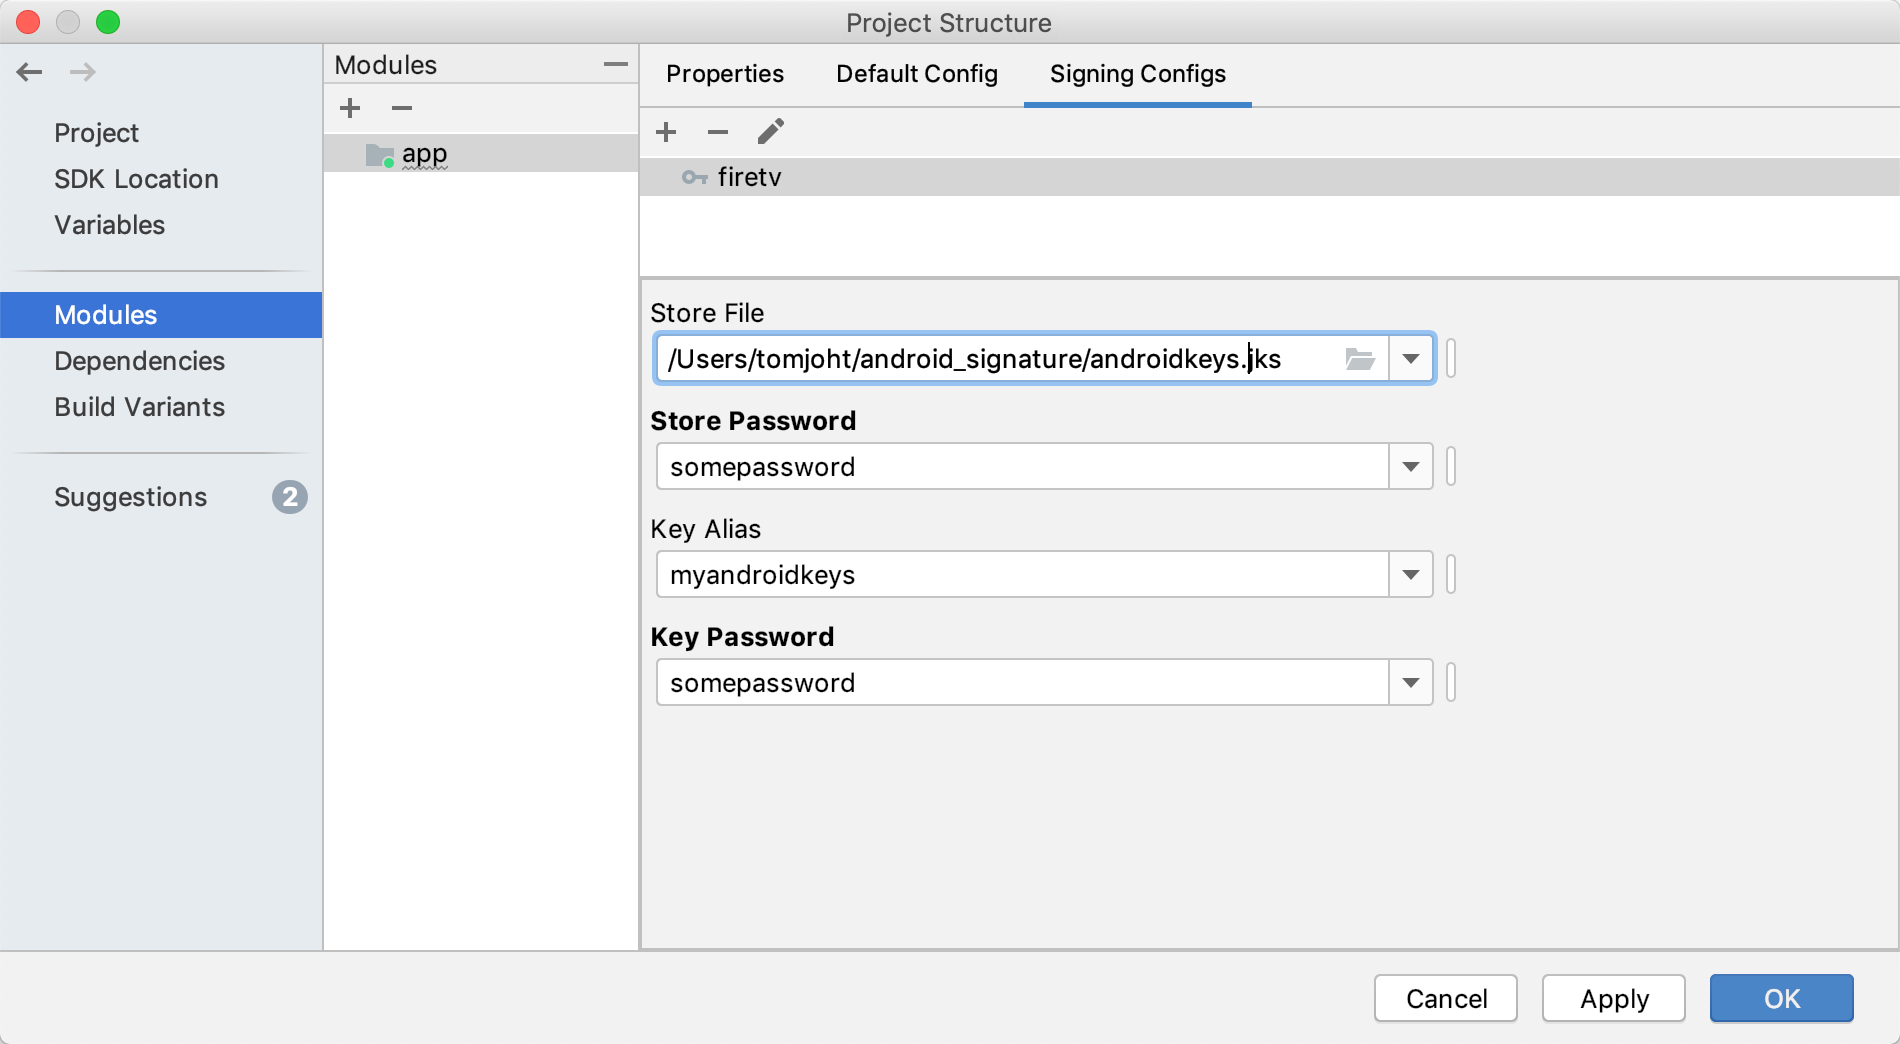 Configuring signing keys